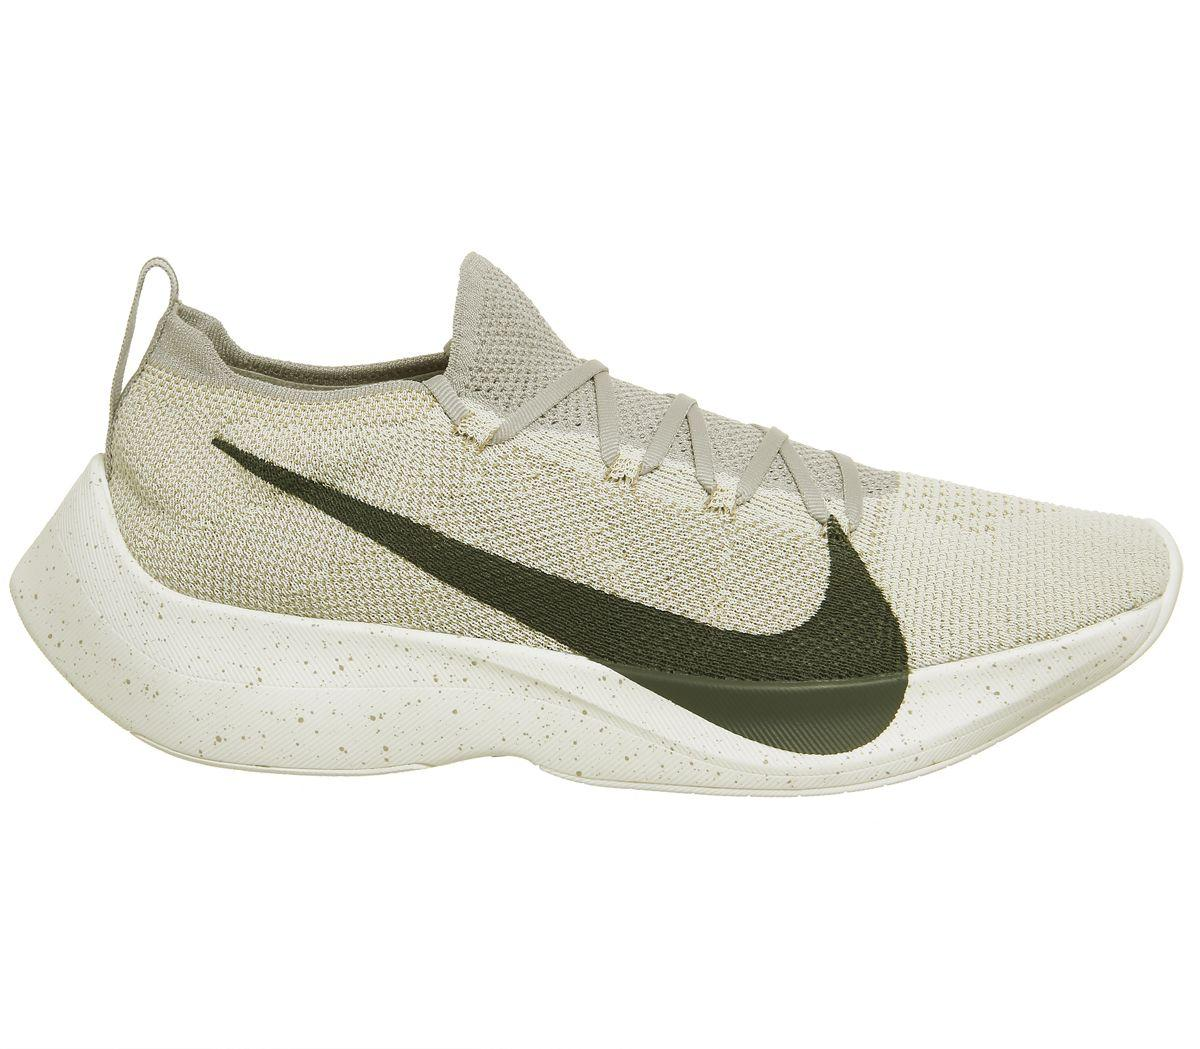 7eb56048c76c1 Lyst - Nike React Vaporfly Elite Trainers in Green for Men